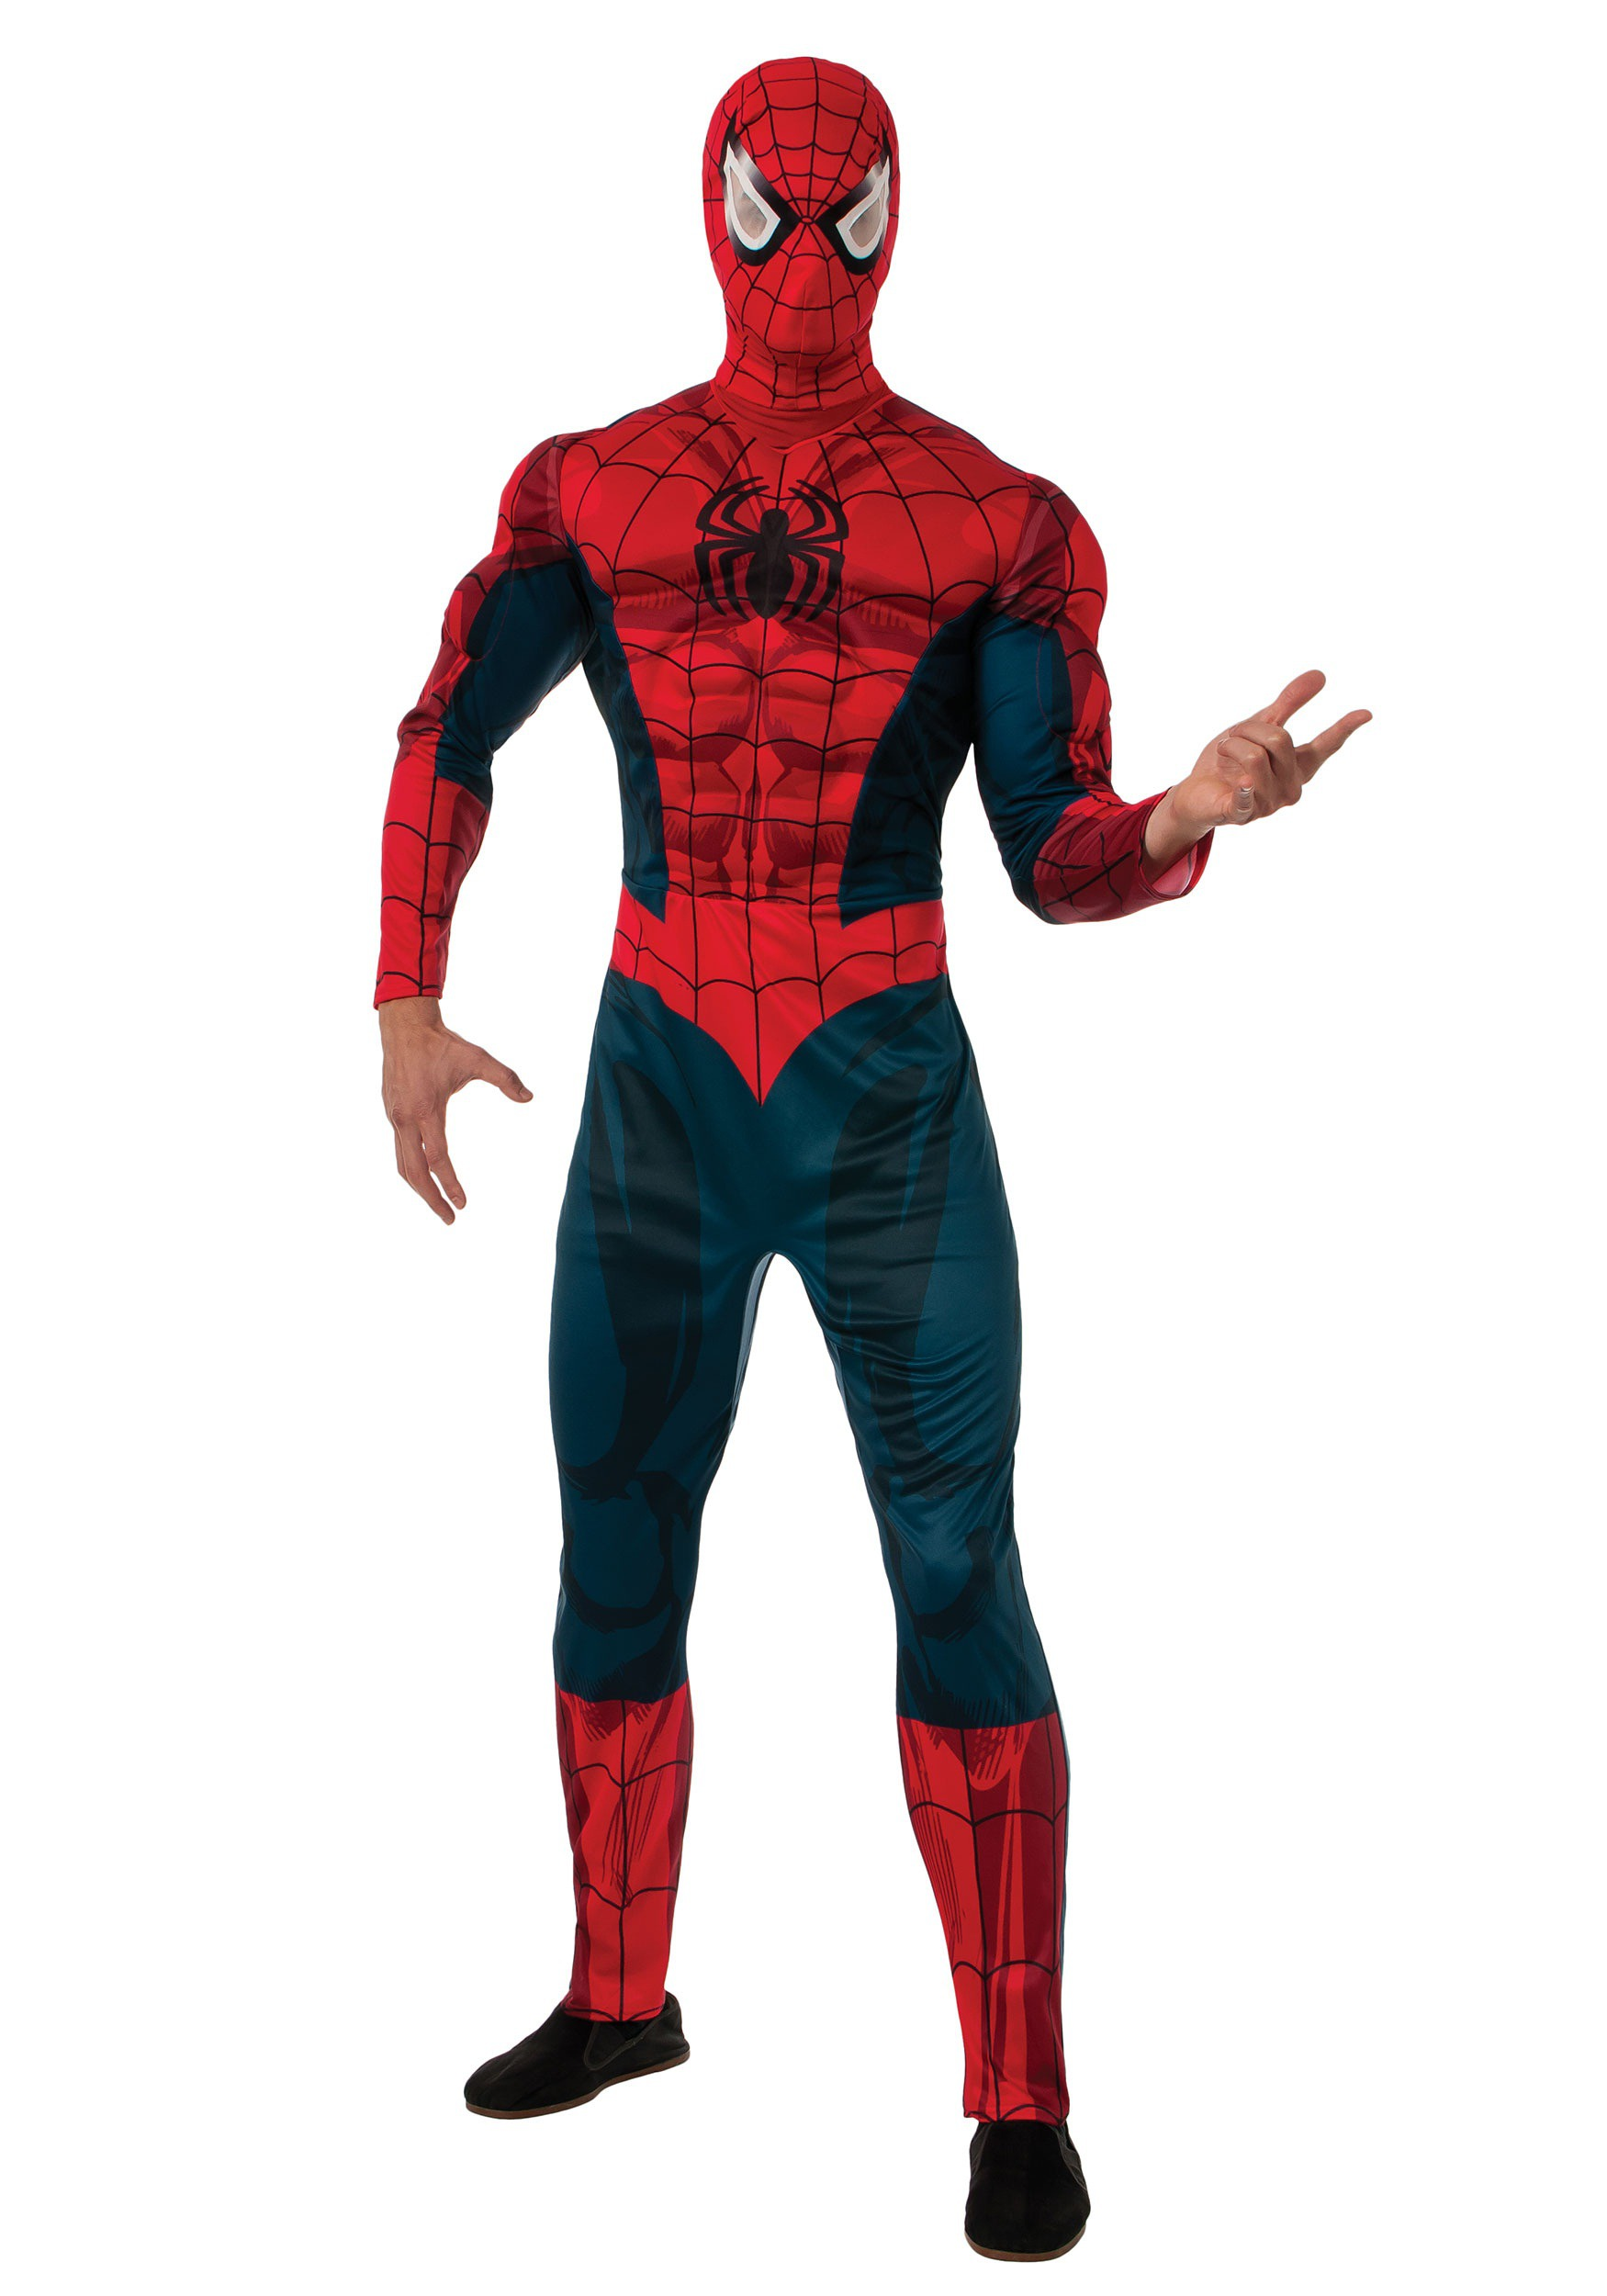 Marvel Adult Spider-Man Costume RU880606